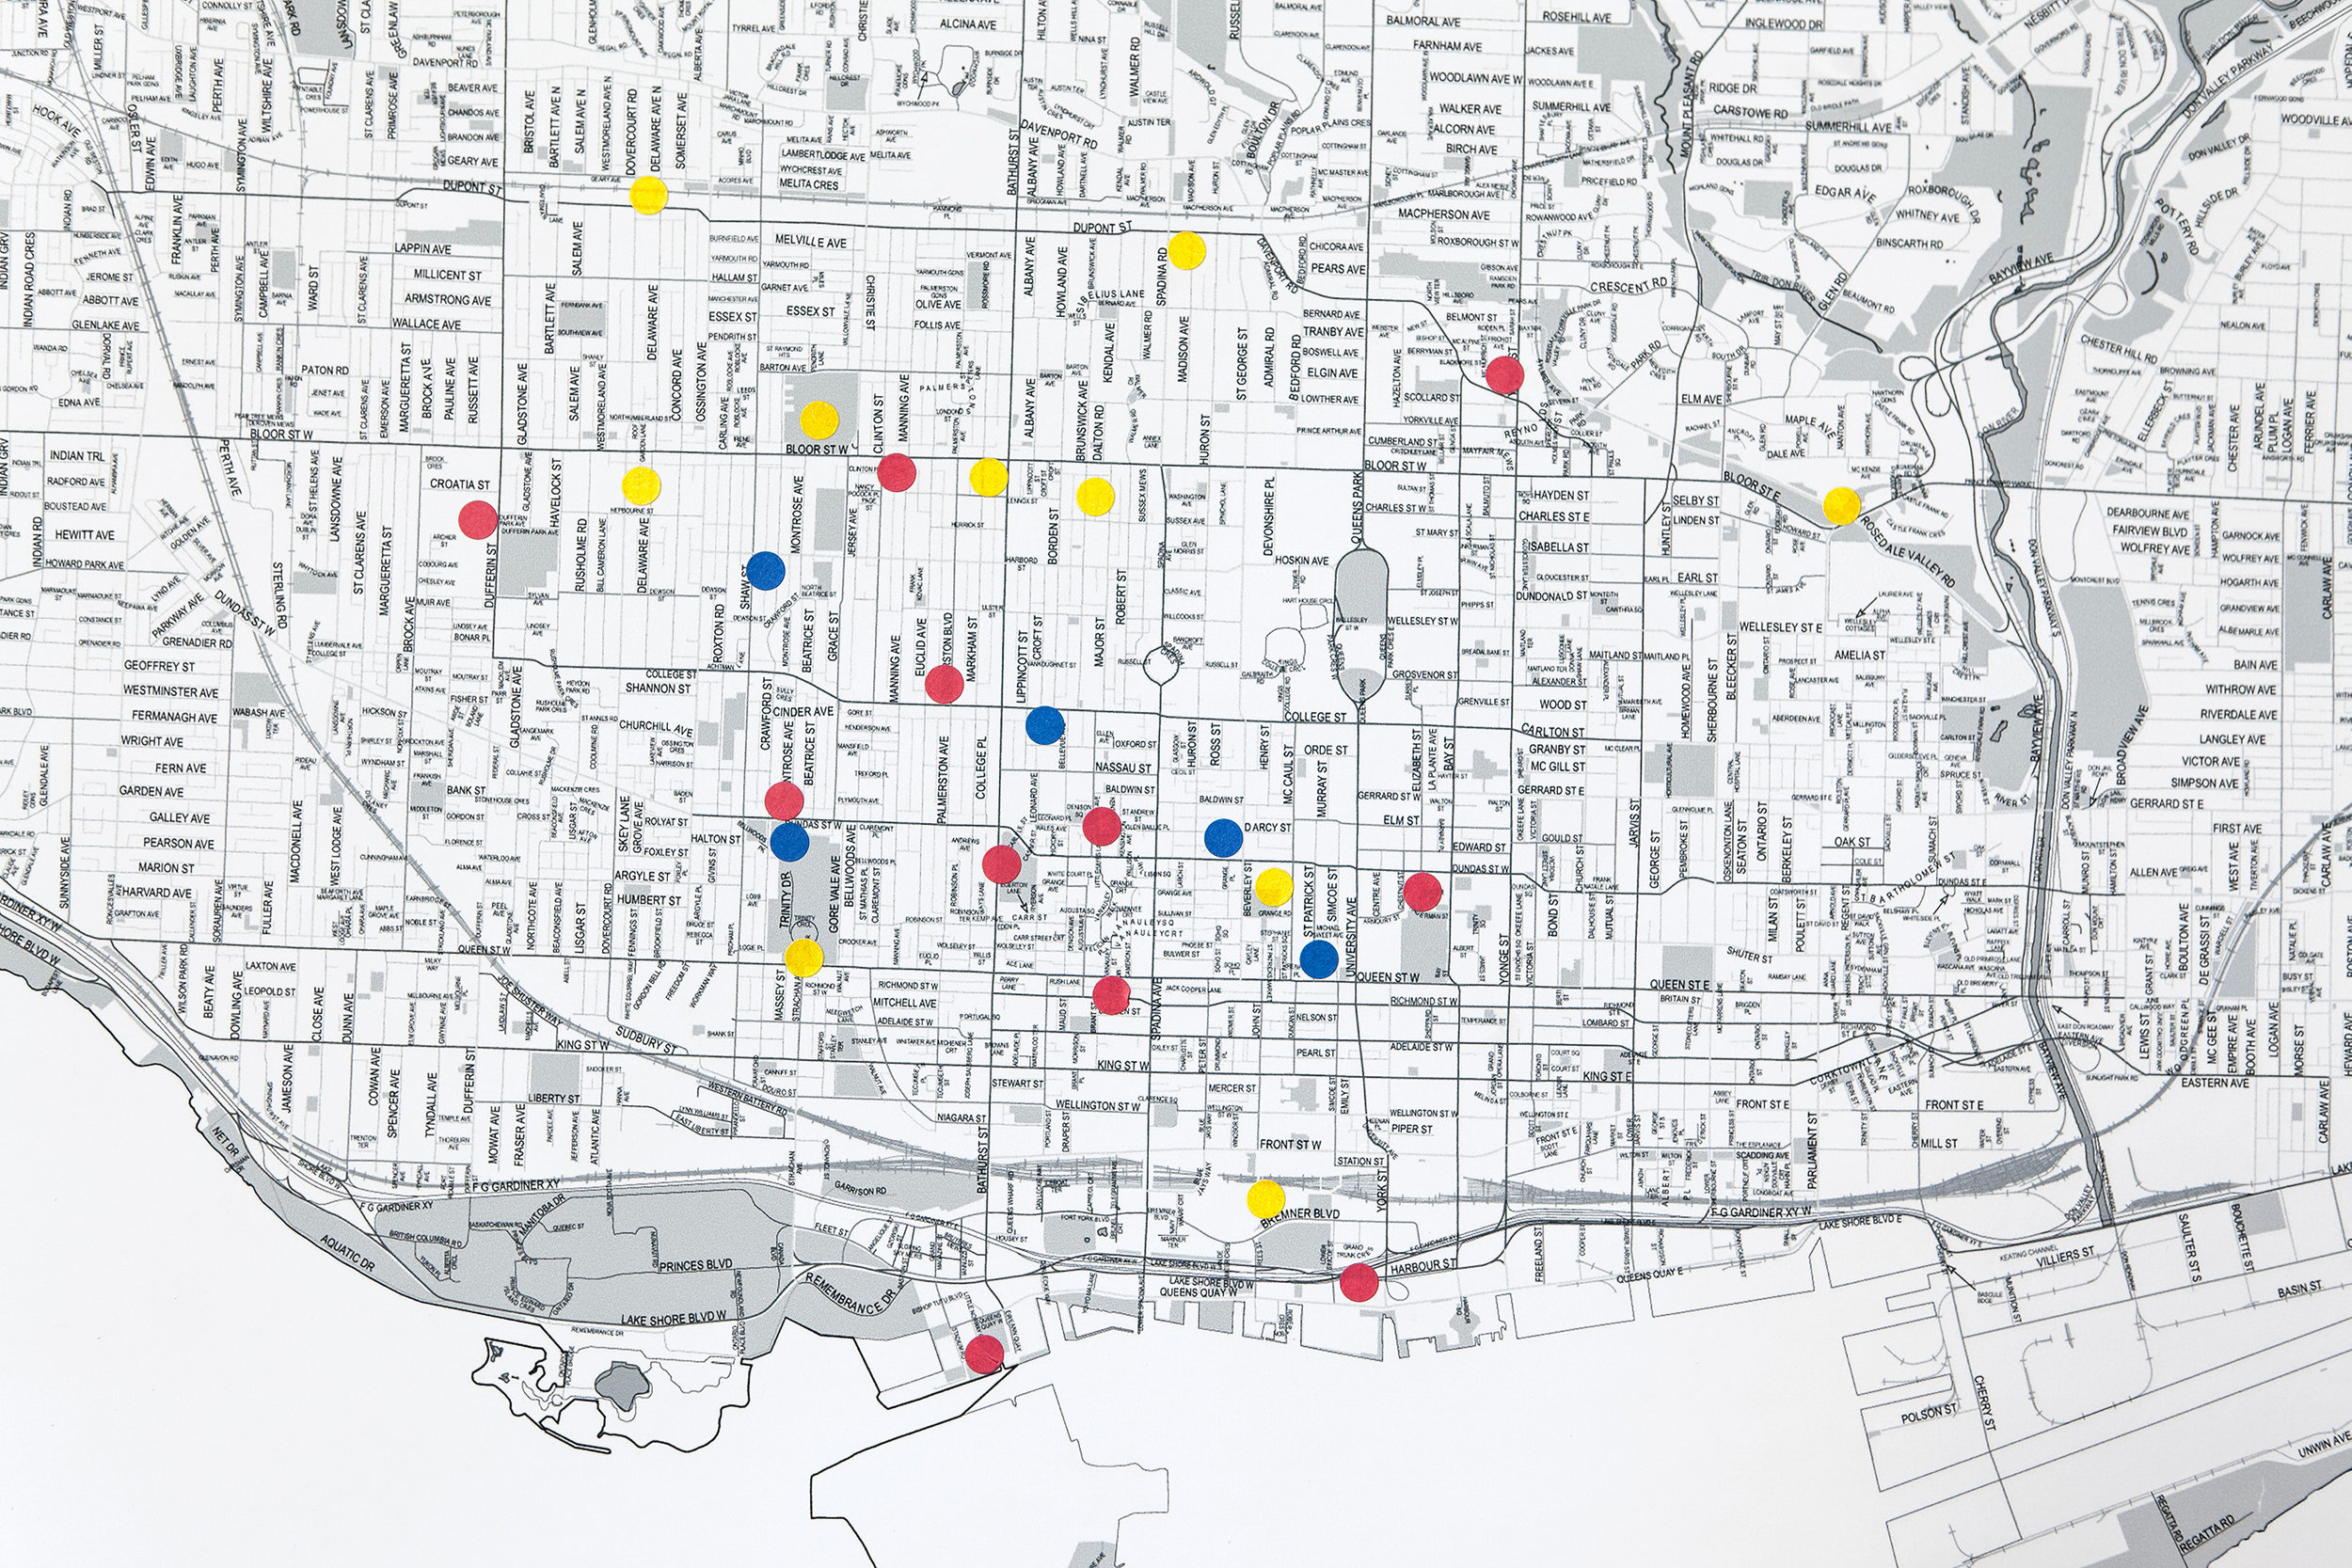 Marketing meaningful places on a map